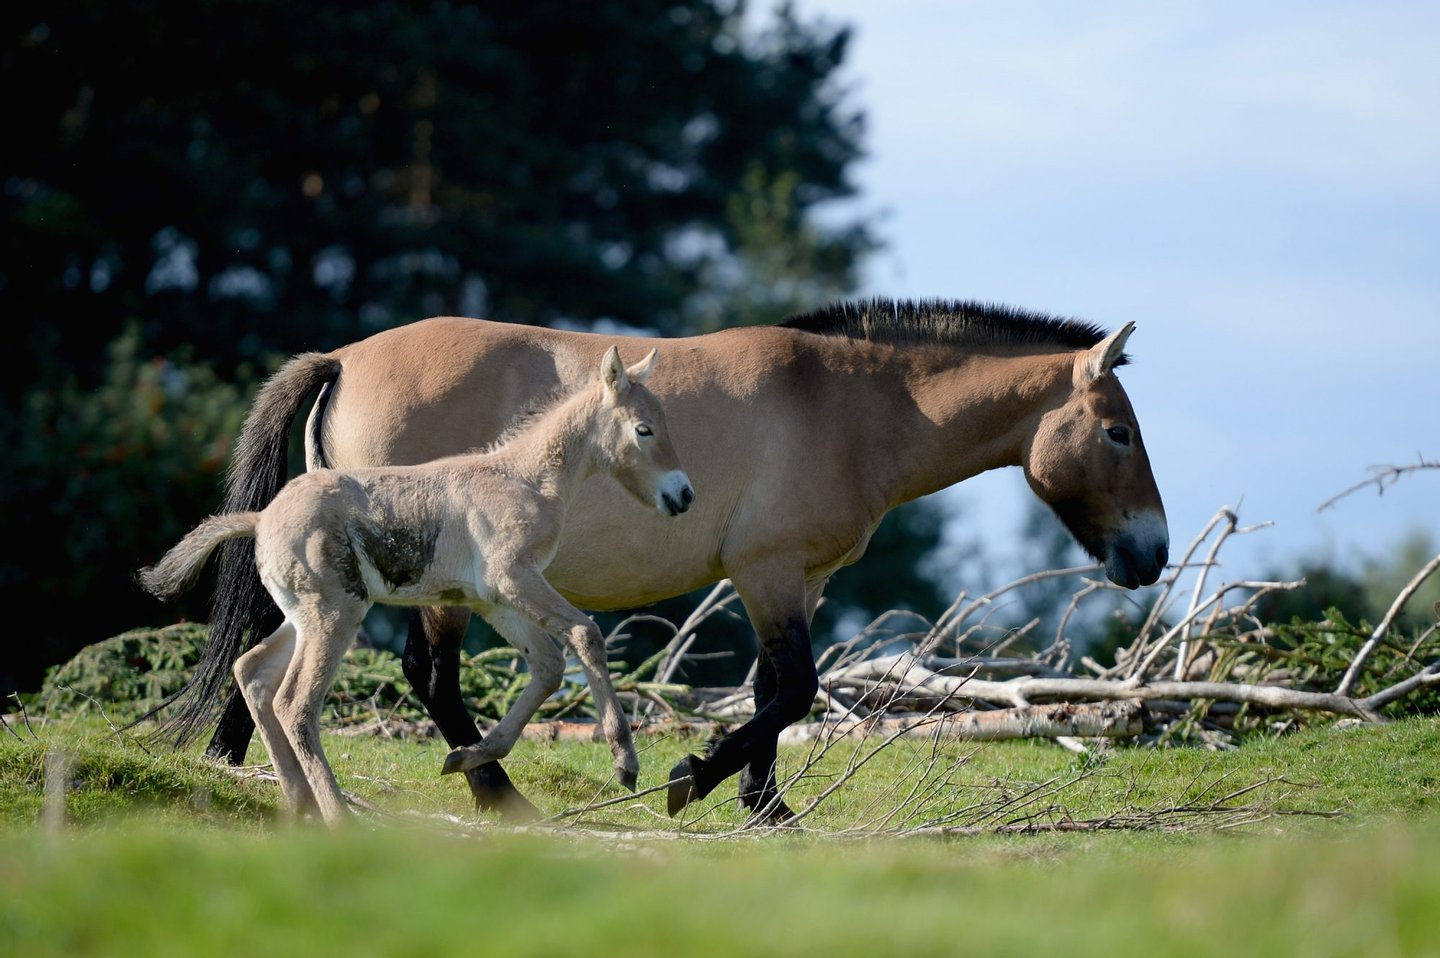 KINGUSSIE, SCOTLAND - SEPTEMBER 09: Ieda 12-year-old mare with her new Przewalski foal at the Highland Wildlife Park on September 9, 2013 in Kingussie, Scotland. The foal born on the 2nd September is the first new-born Przewalski's horse at the park in five years. Przewalski's horses were once extinct in the wild until a small captive bred population were reintroduced in Mongolia in the 1990s and are now listed as Endangered. (Photo by Jeff J Mitchell/Getty Images)